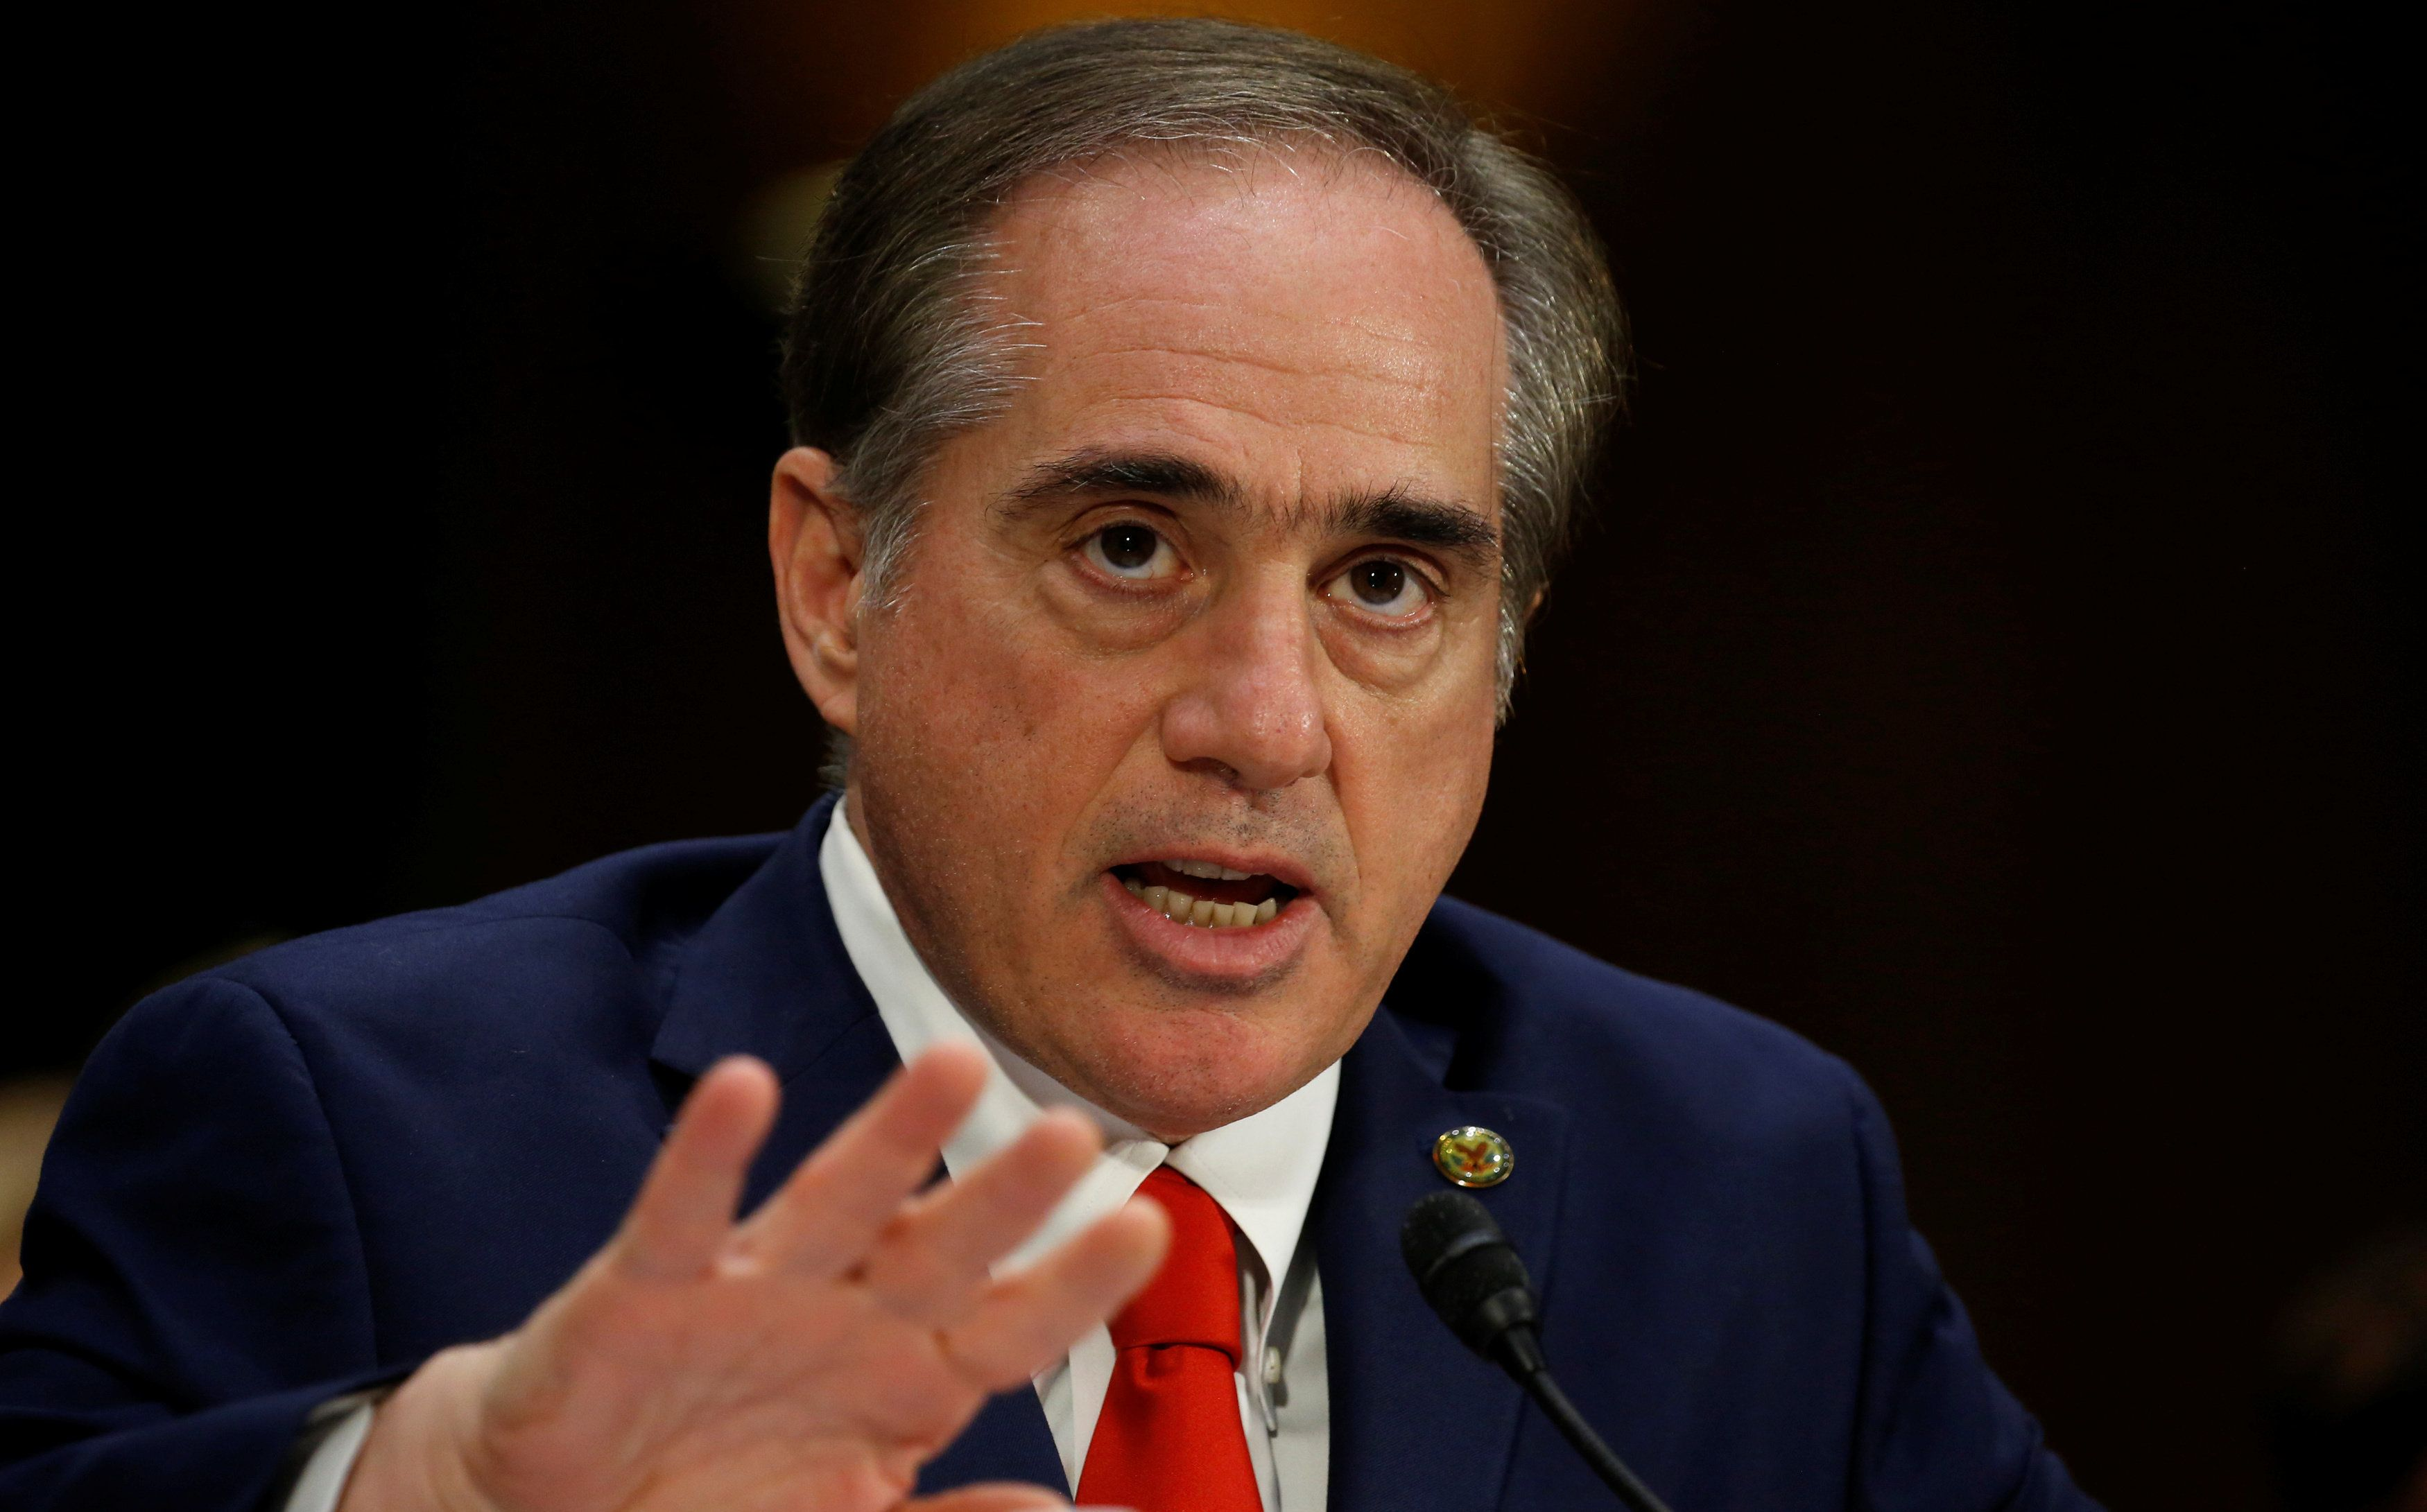 David Shulkin testifies before the Senate Veterans Affairs Committee during his confirmation hearing on his nomination to be Veterans Affairs secretary on Capitol Hill in Washington, U.S., February 1, 2017.  REUTERS/Kevin Lamarque